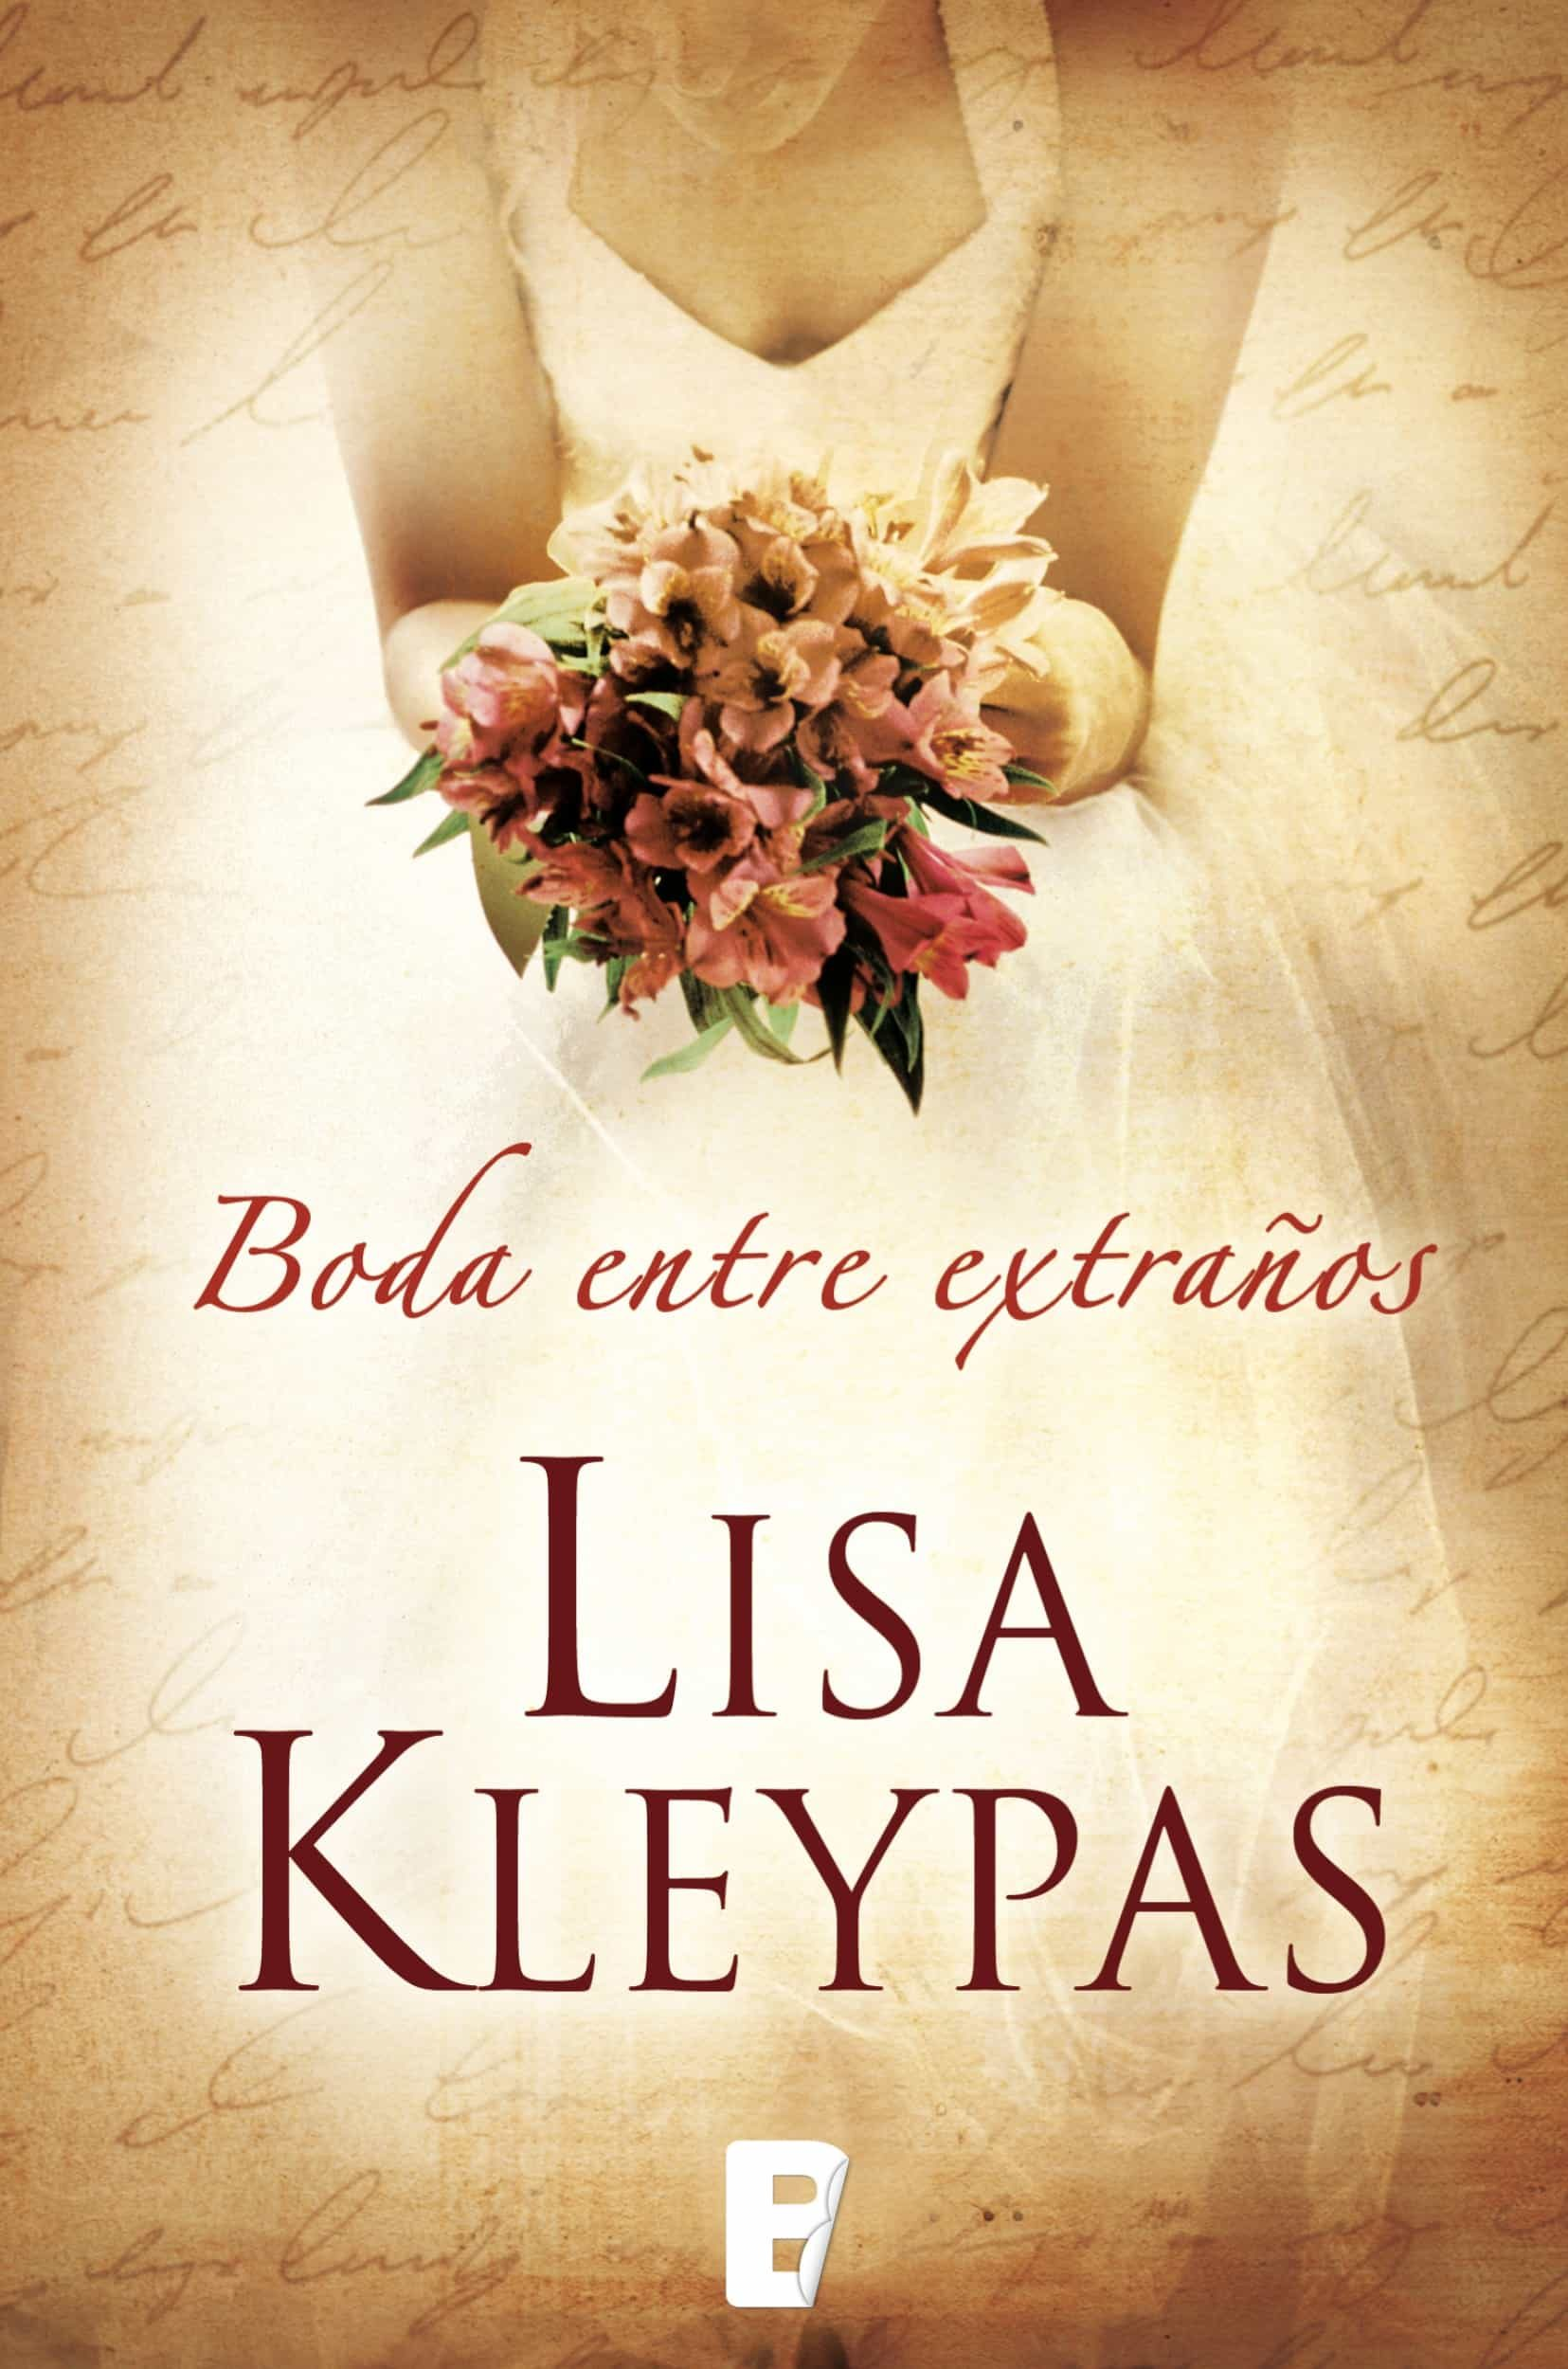 Blog De Descarga De Libros Una Boda Entre ExtraÑos Vallerands 1 Ebook Lisa Kleypas Descargar Libro Pdf O Epub 9788490192610